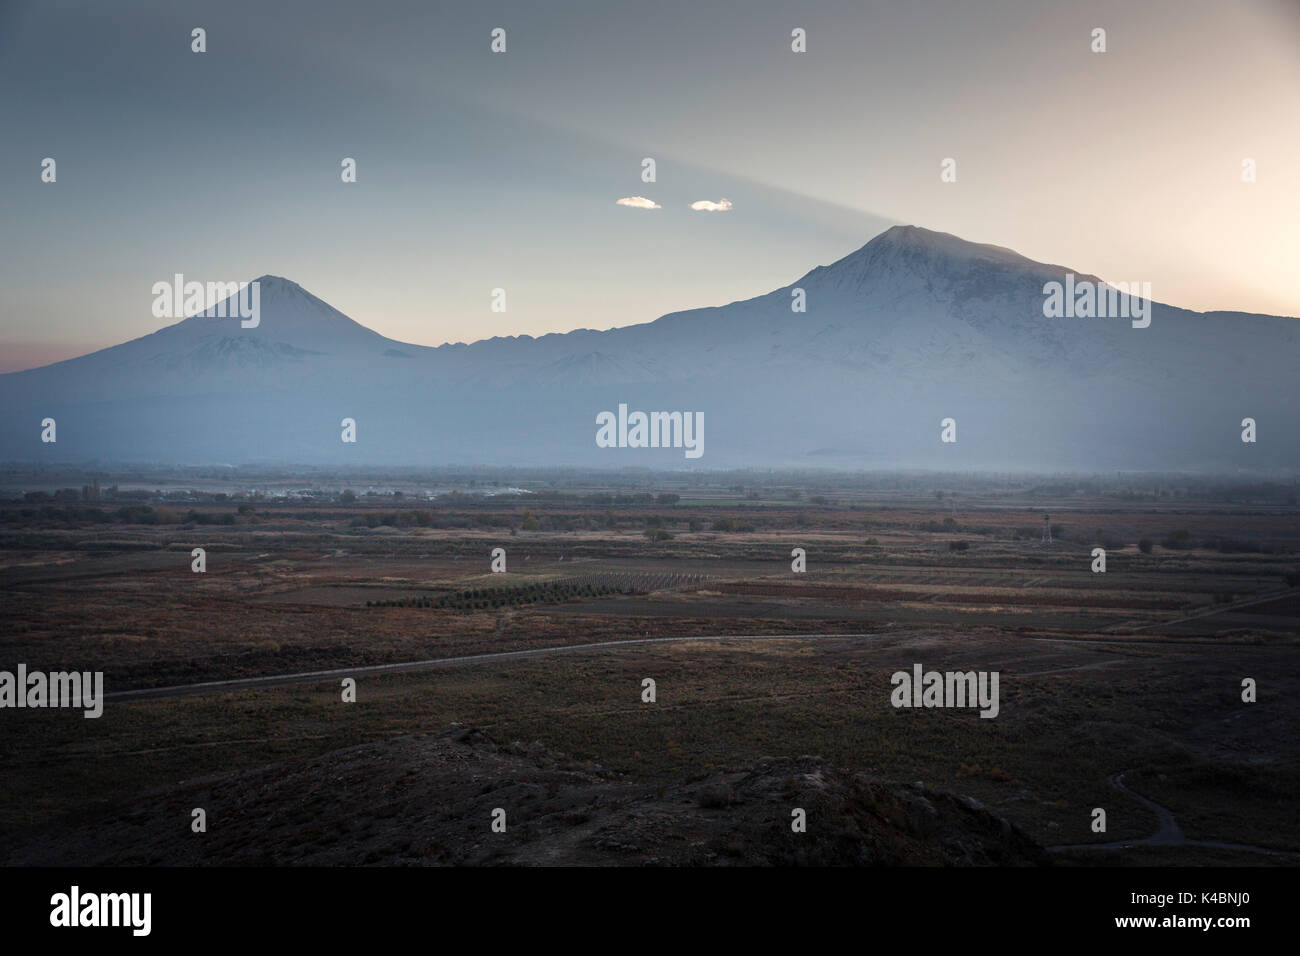 Landscape in front of Mount Ararat between Yerevan and the monastery of Kkor Virap, in Armenia. Stock Photo